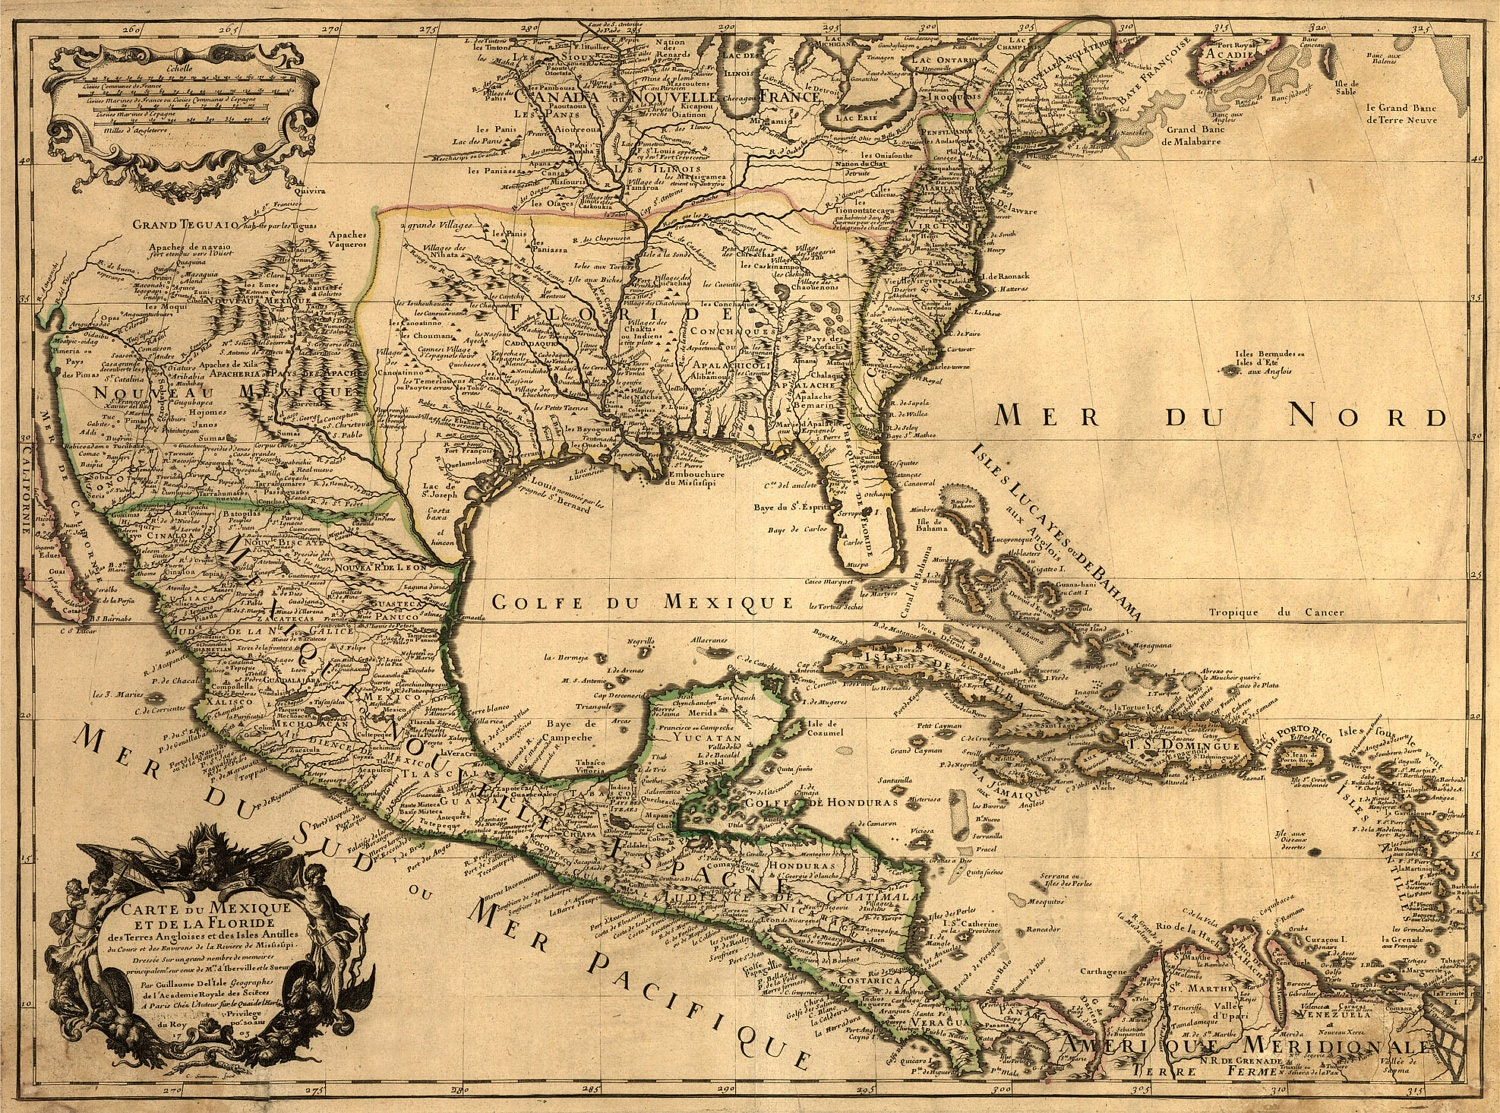 US MAP Nice Map Old America Mexico Gulf Unique - Map of us 1700